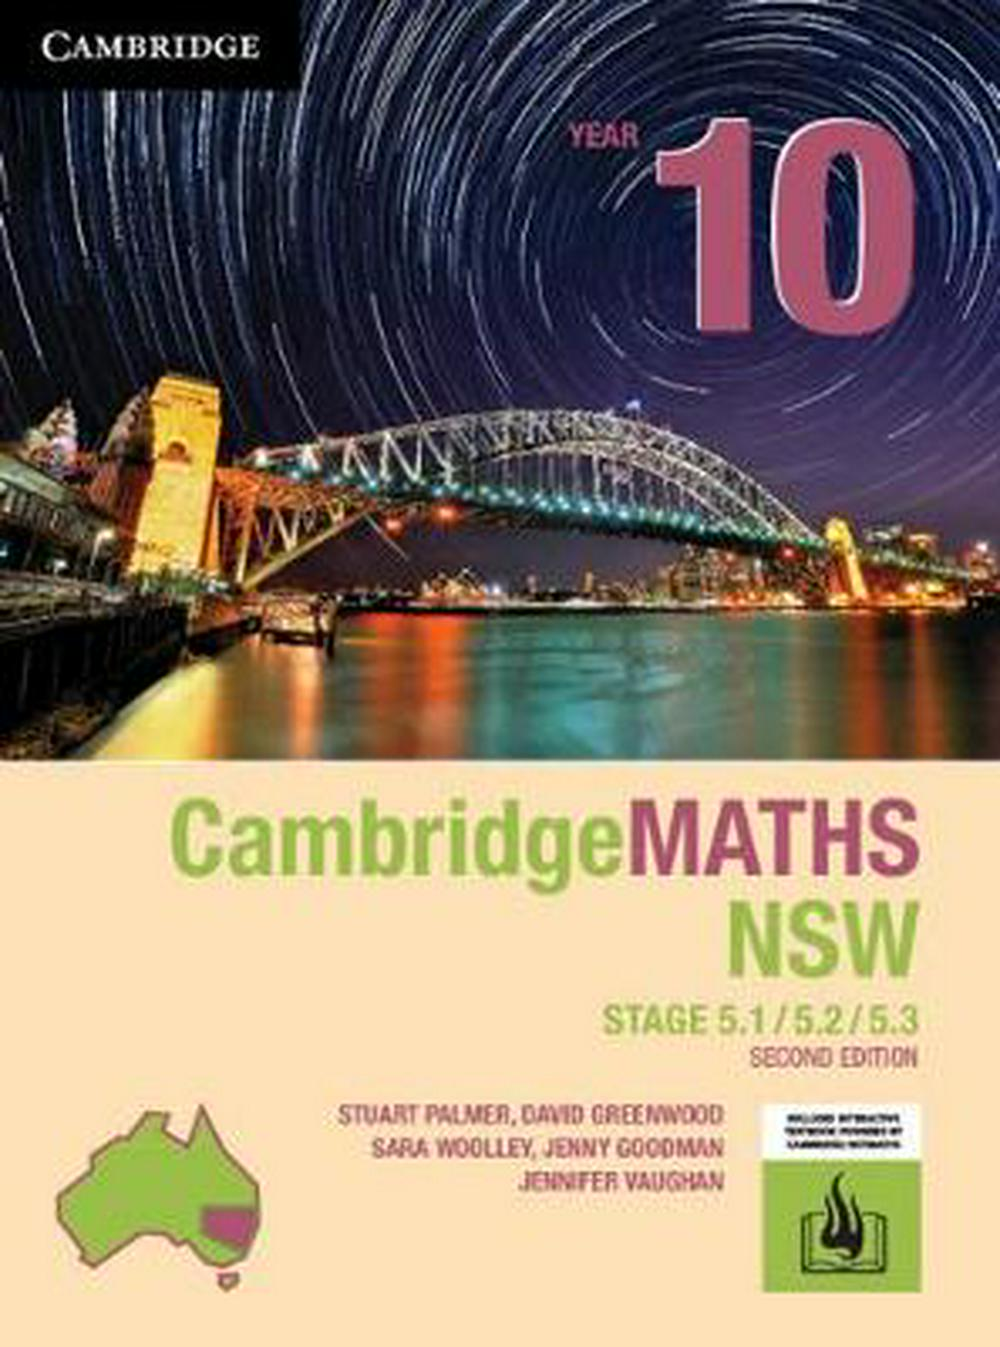 Cambridge Maths Stage 5 NSW Year 10 5.1/5.2/5.3 2ed